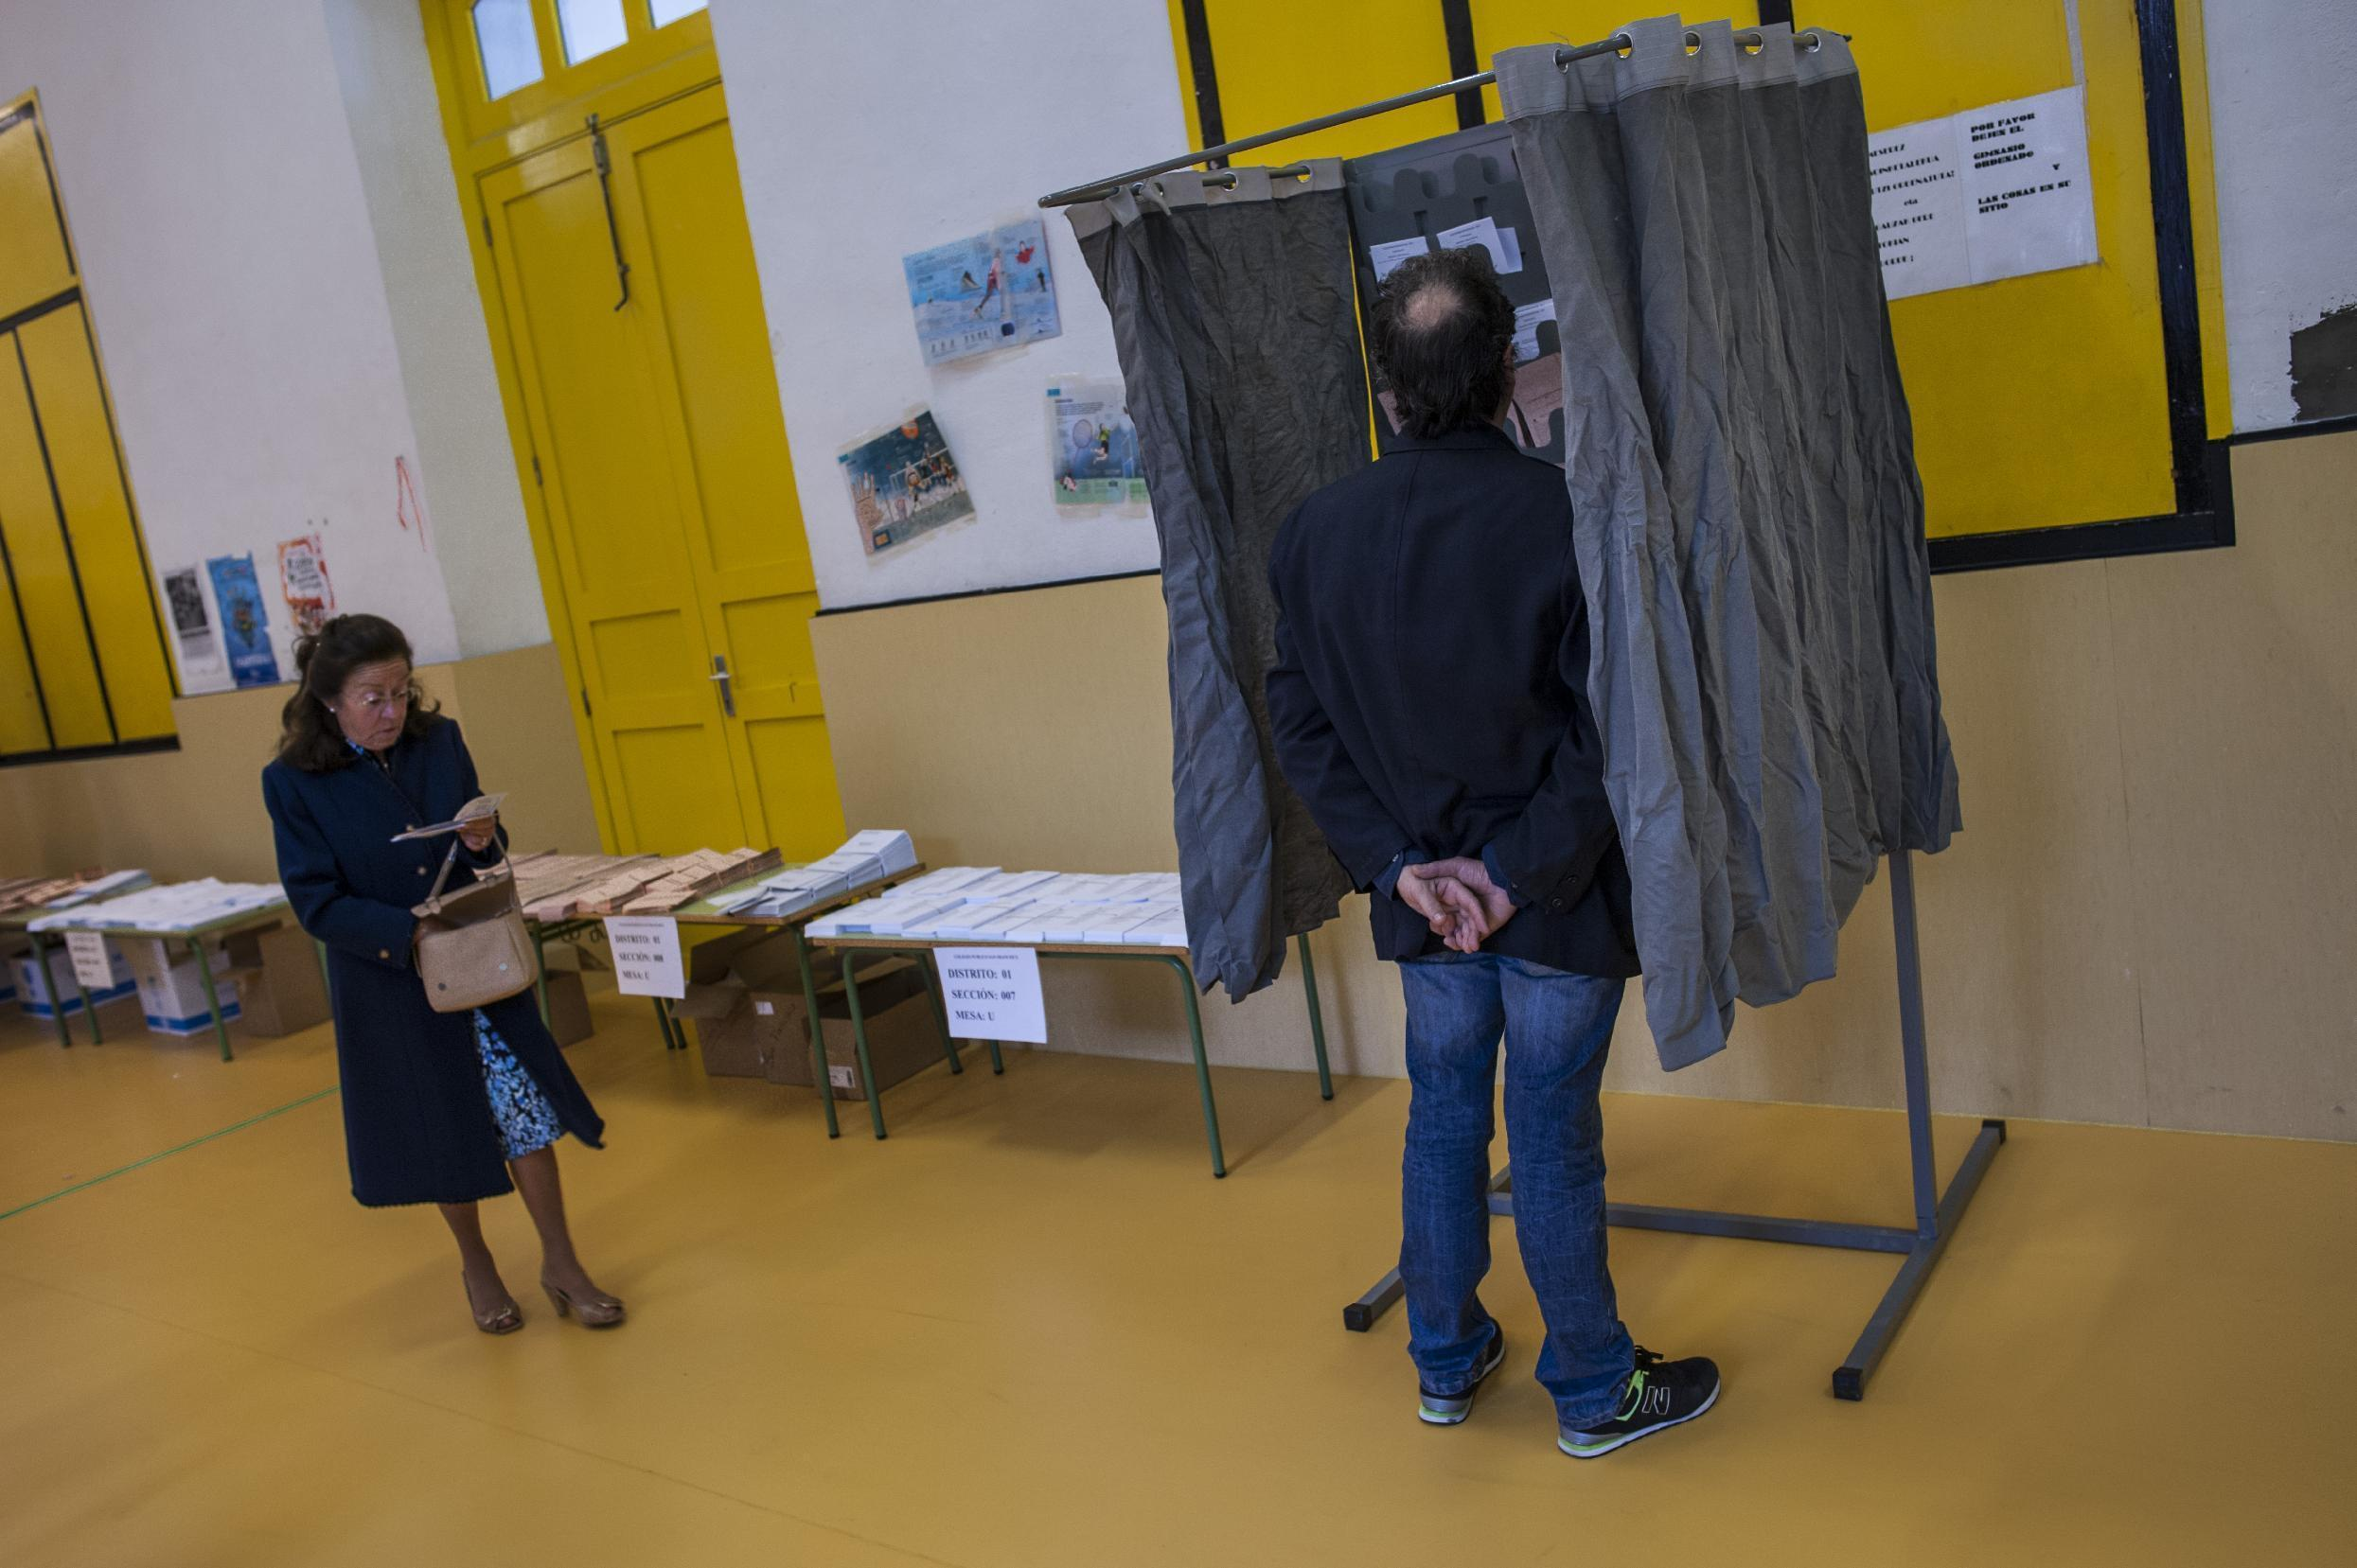 Local elections in Spain test upstart parties' voter appeal